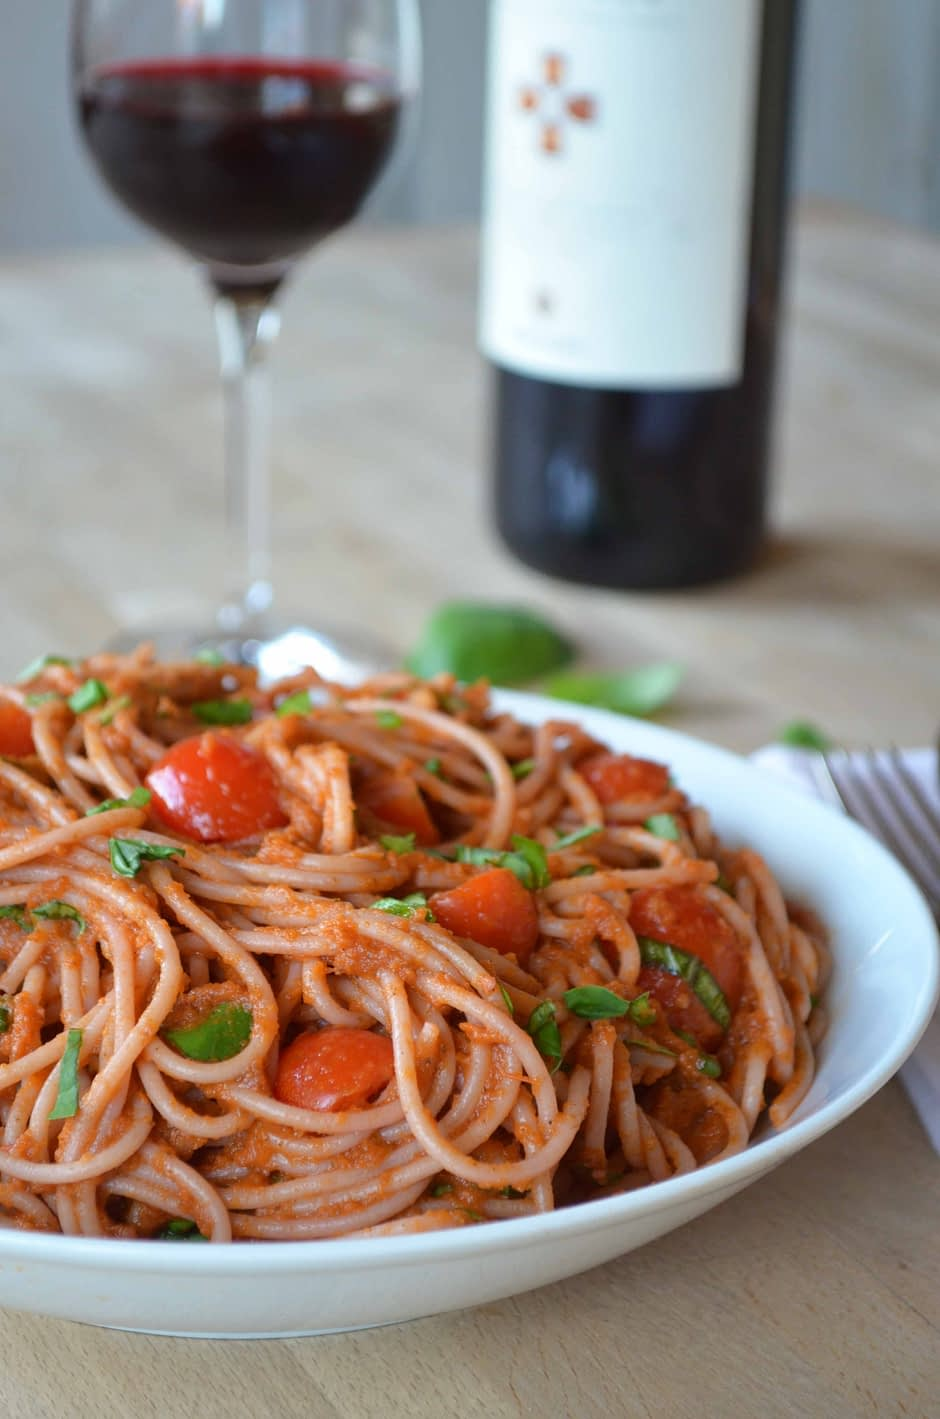 The best marinara pasta sauce. Recipe and photo by That Healthy Kitchen